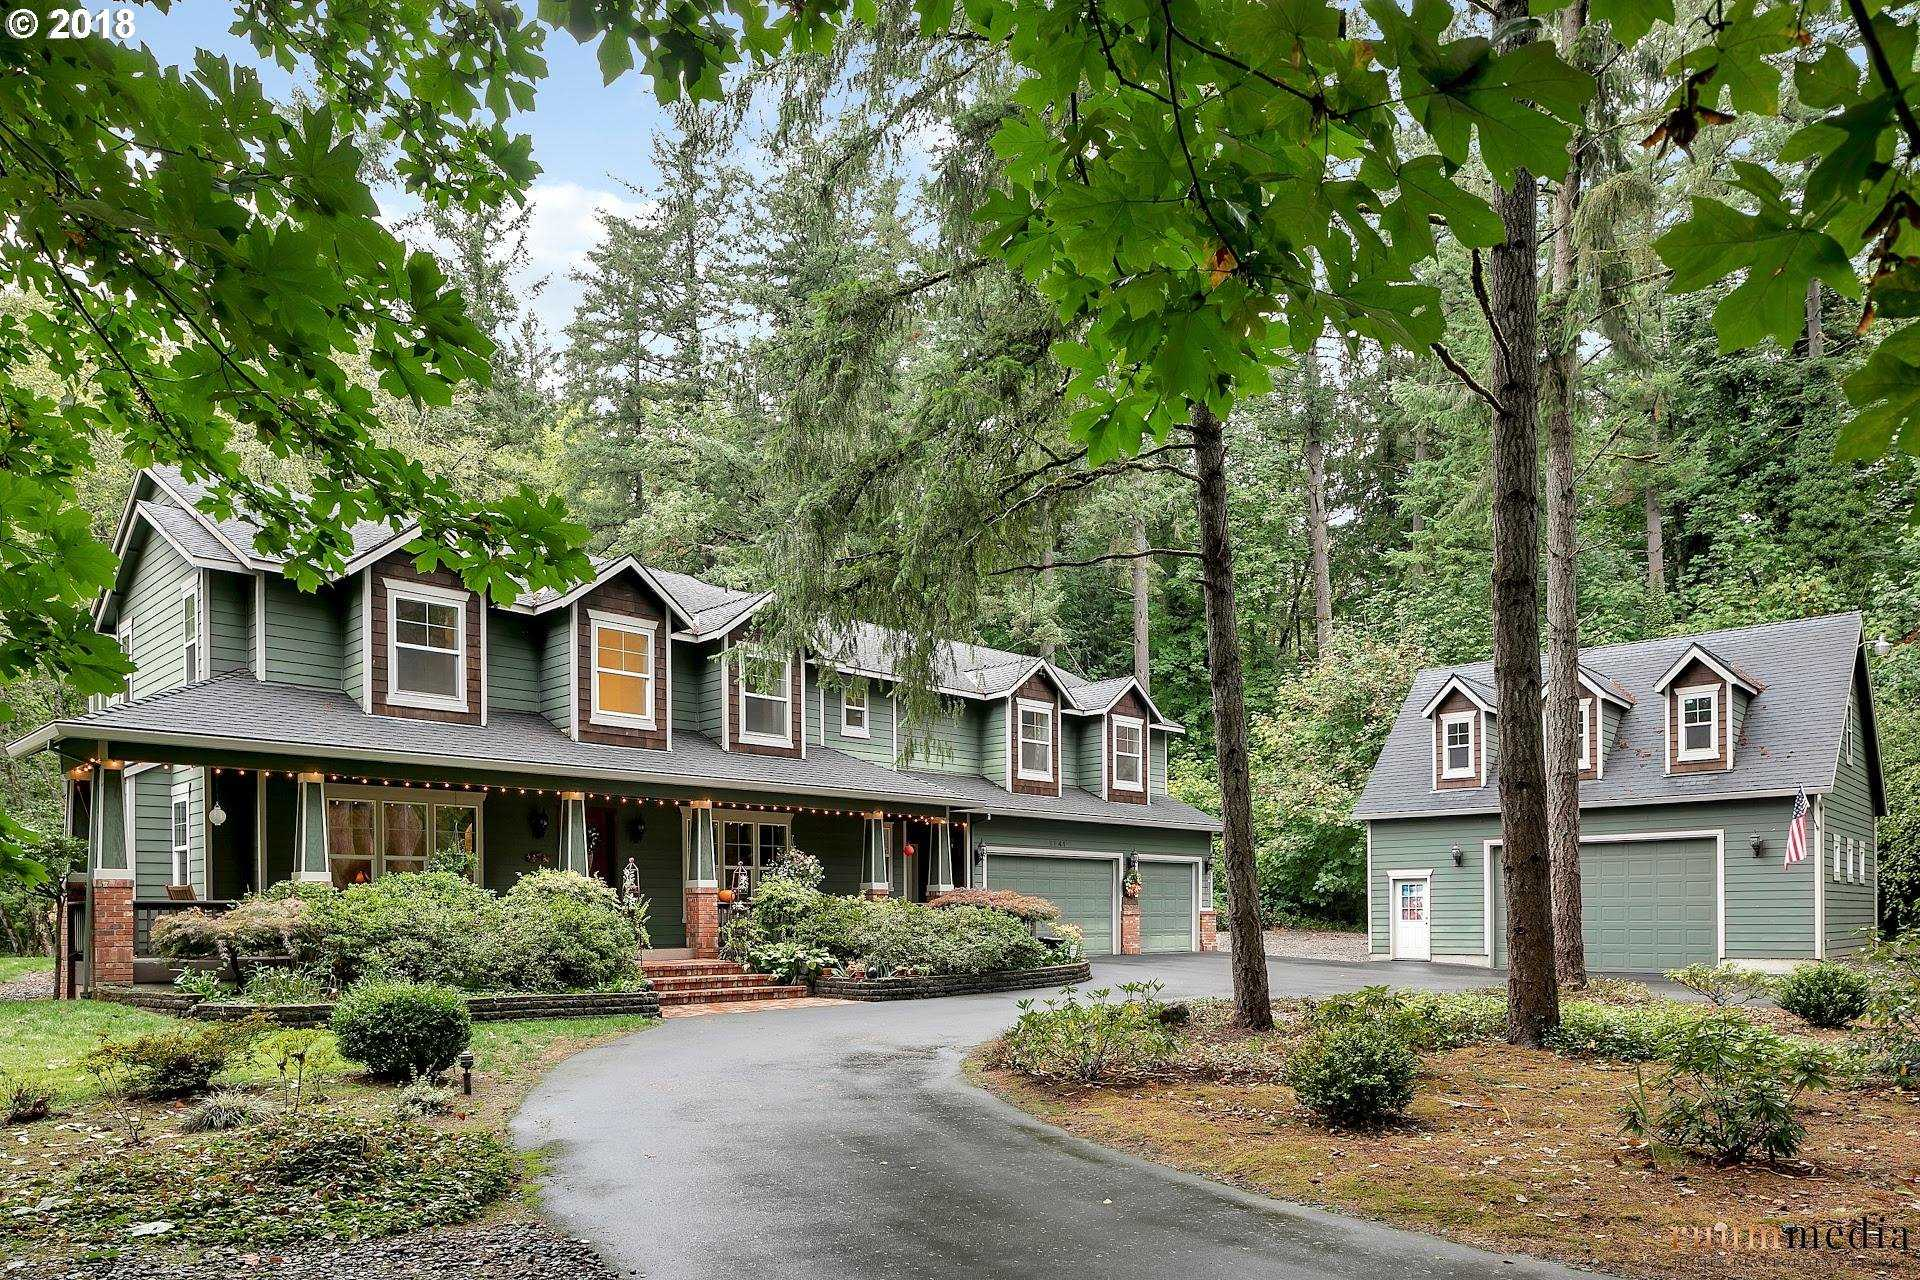 $1,219,000 - 4Br/4Ba -  for Sale in Wilsonville